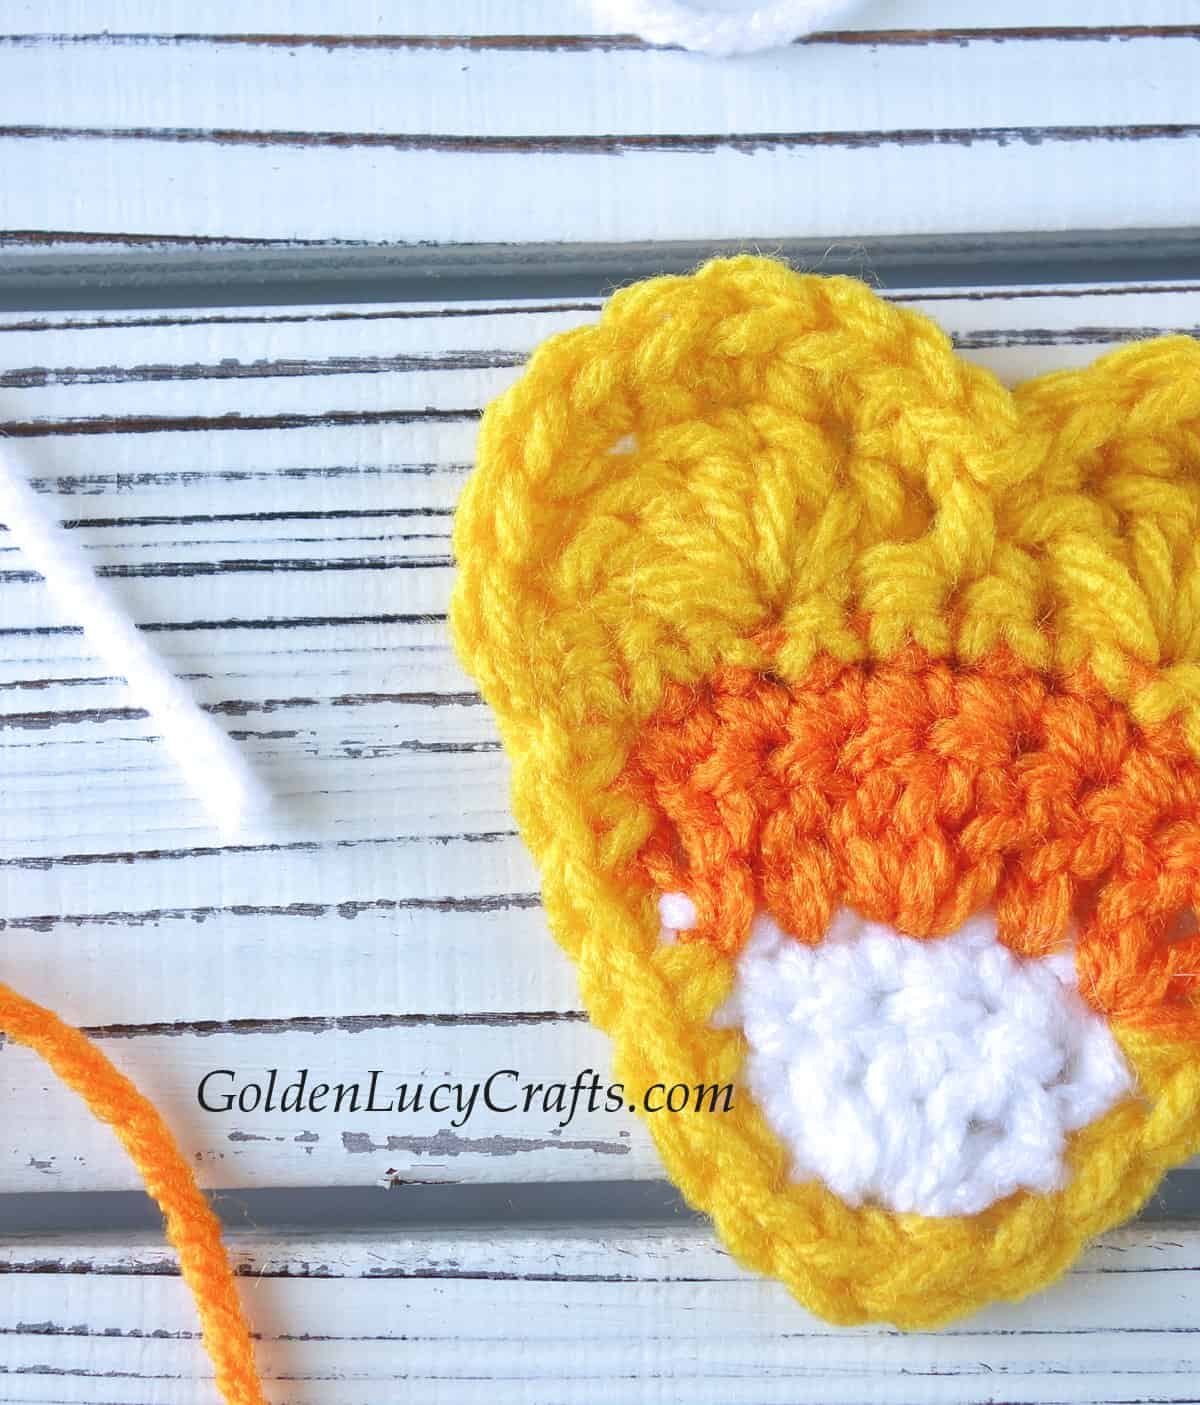 Crocheted candy corn heart close up image.